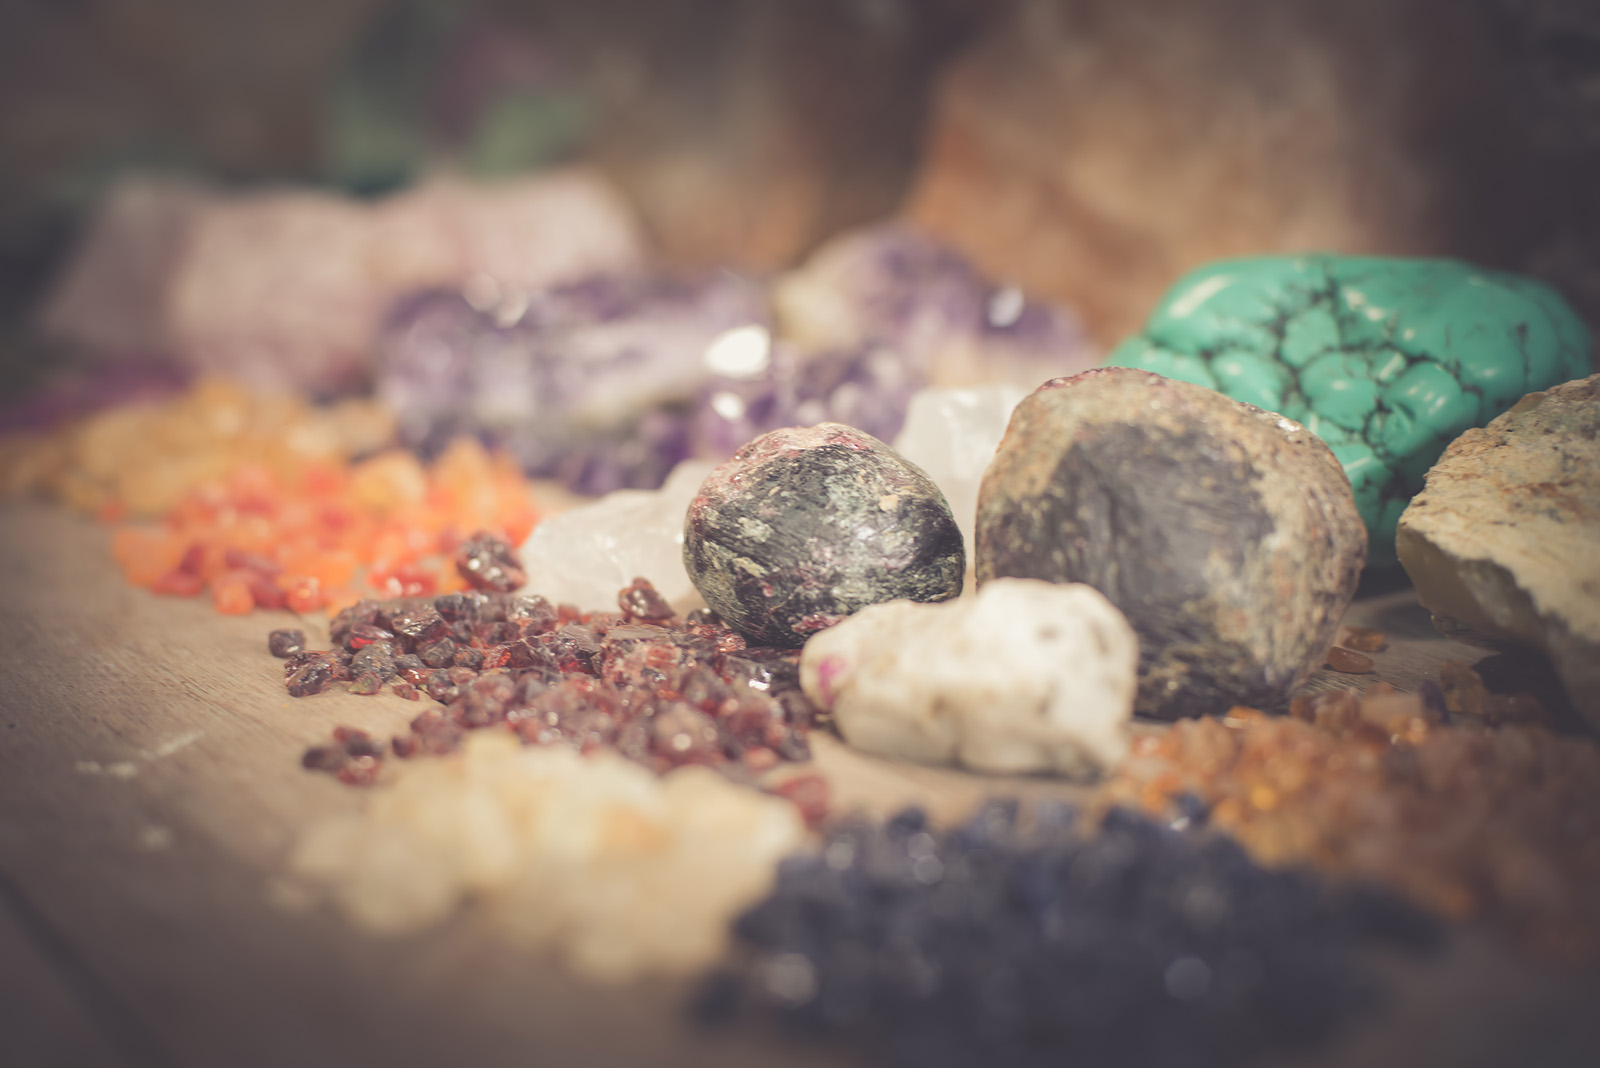 Varieties of rough gemstones